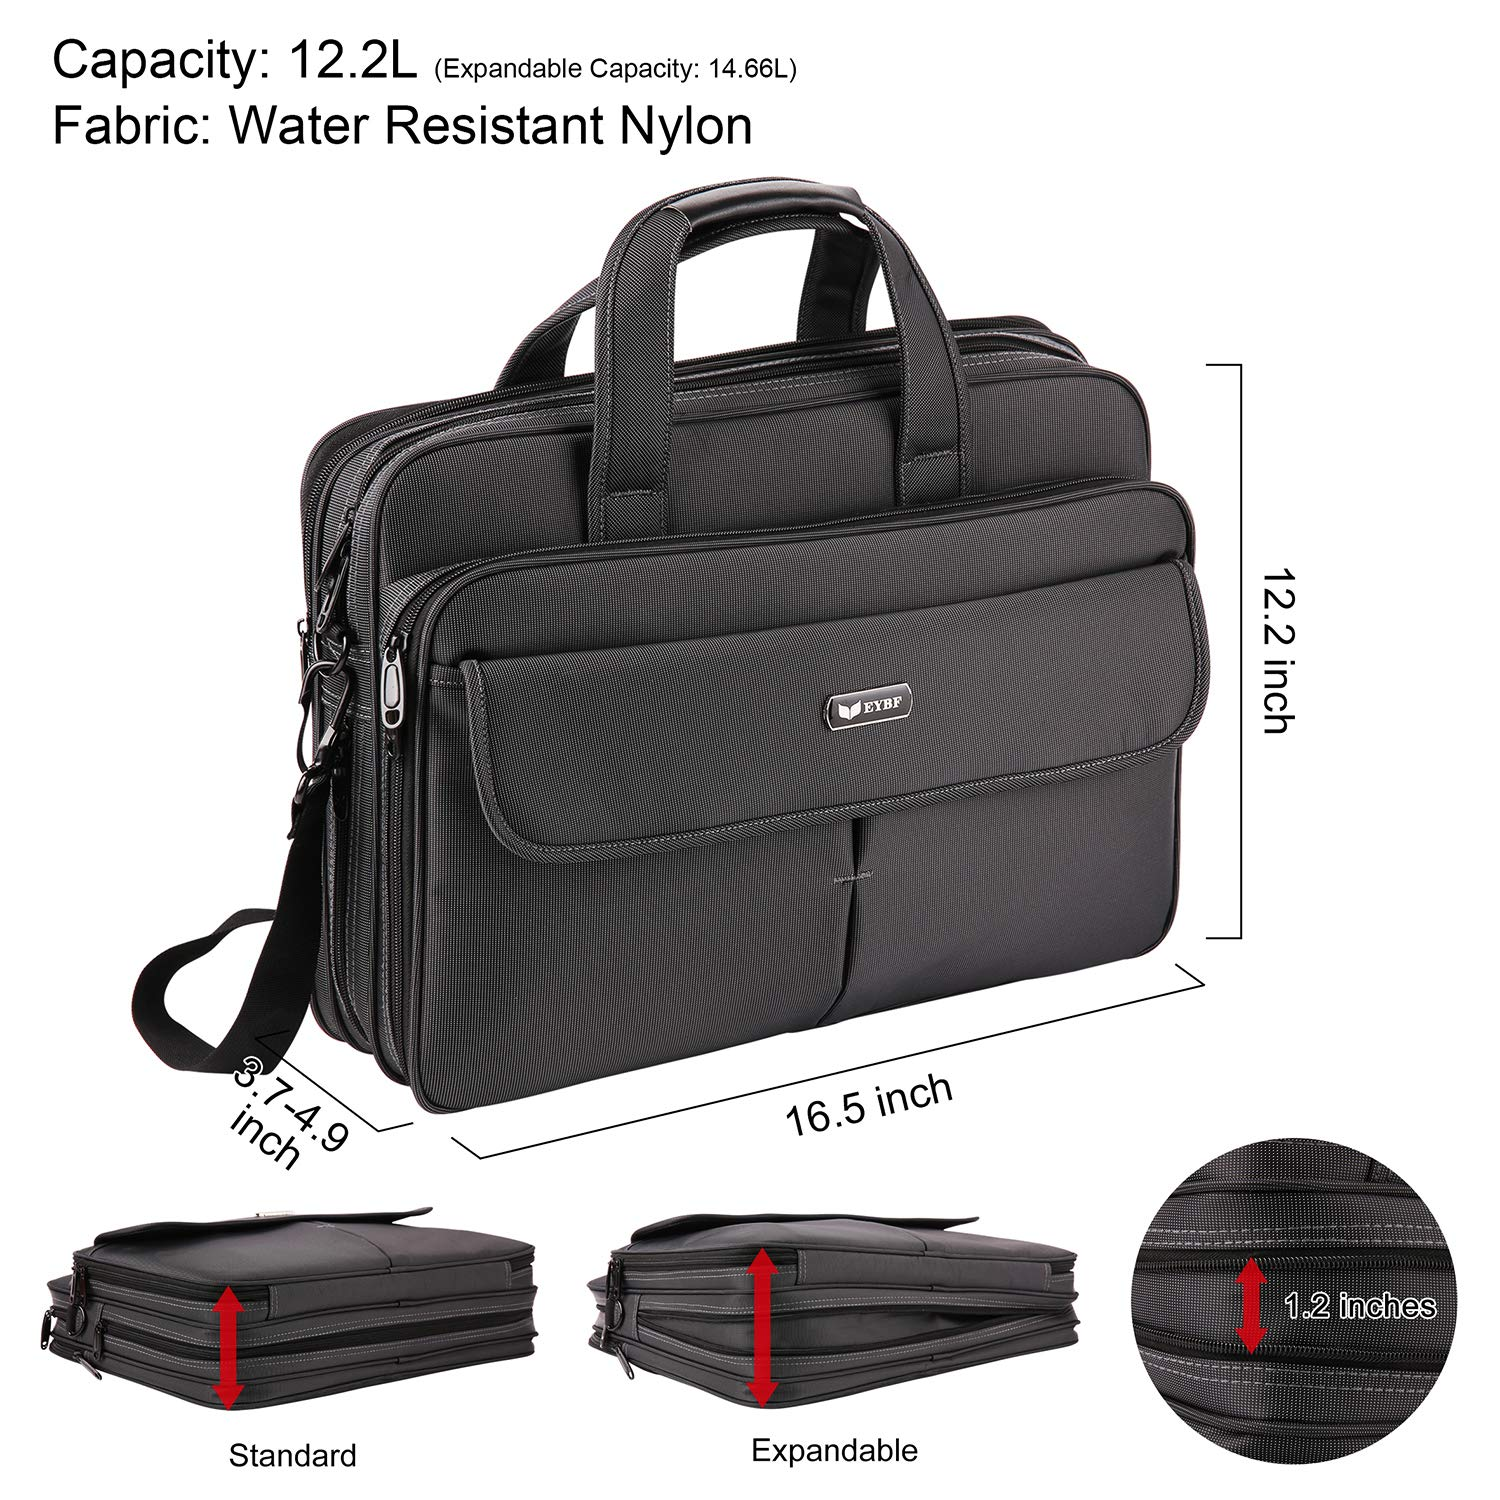 EYBF Laptop Bag 15.6 Inch, Expandable Travel Business Briefcase for Men & Women, Water Resistant Messenger Shoulder Bag with Organizer, Black by EYBF (Image #2)